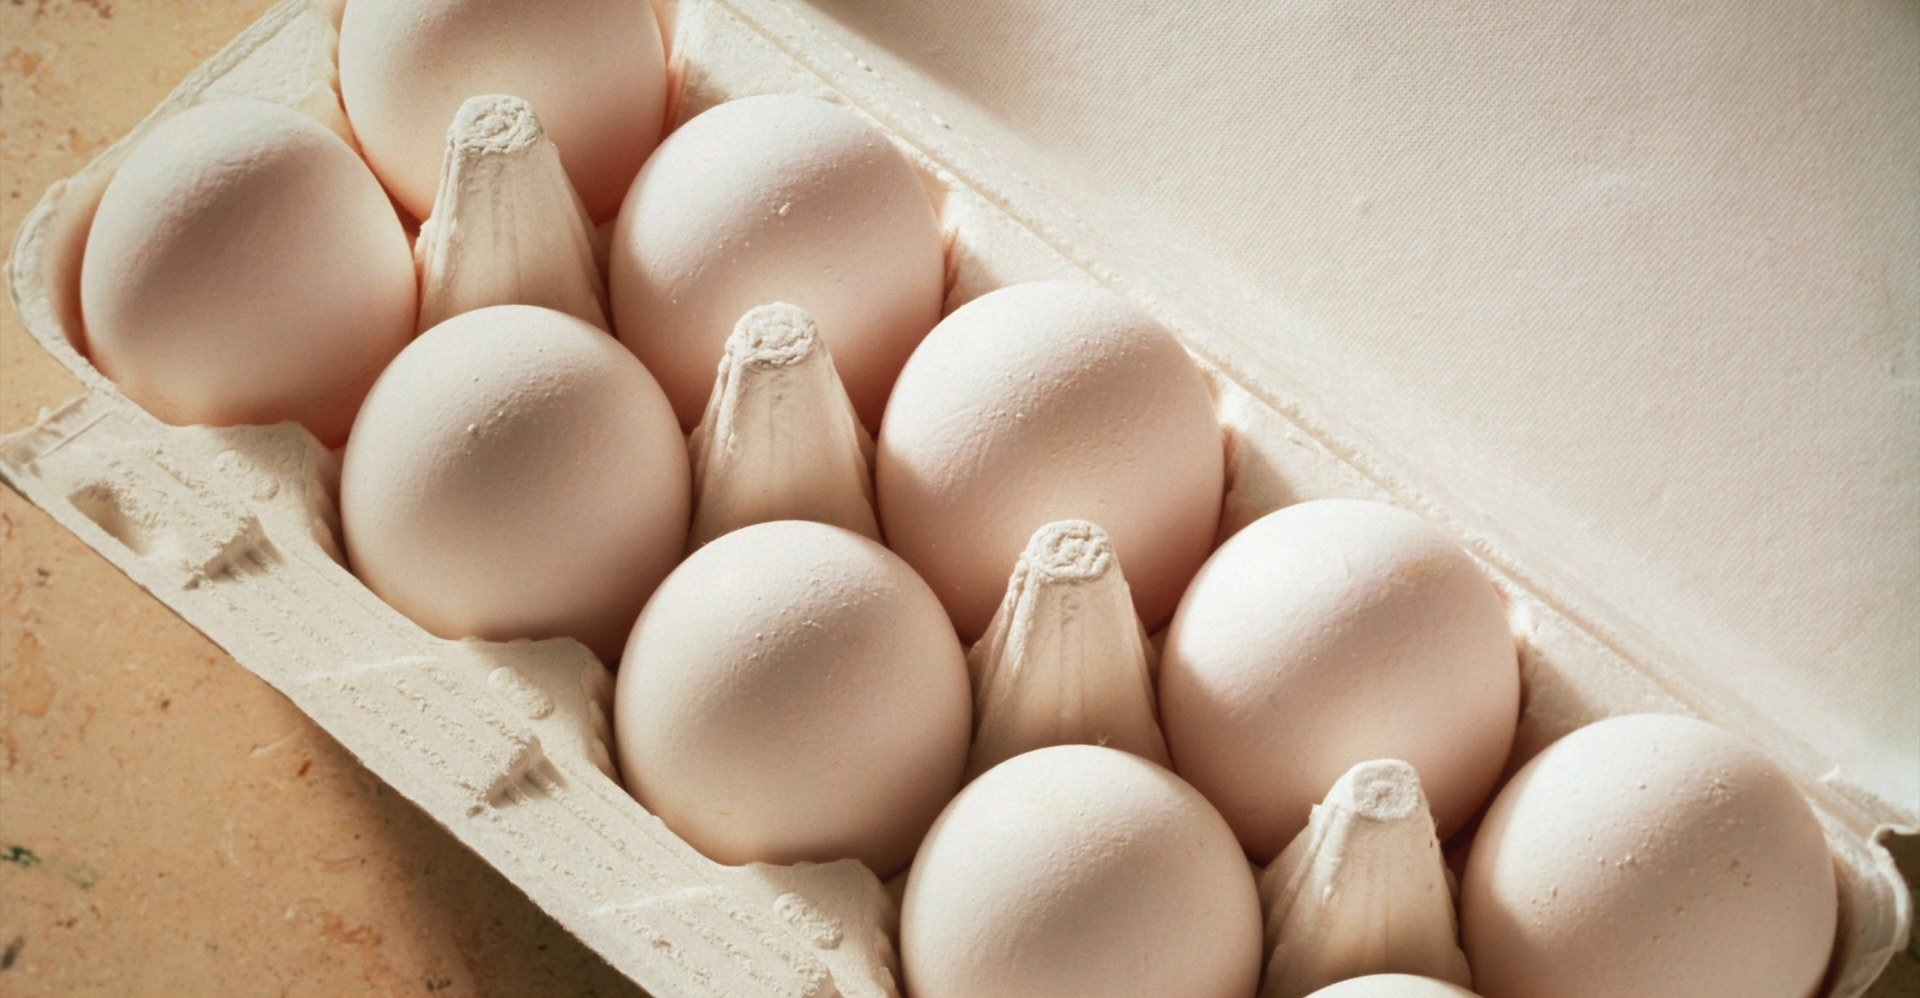 Eggs At The Grocery Store Might Be Older Than You Think